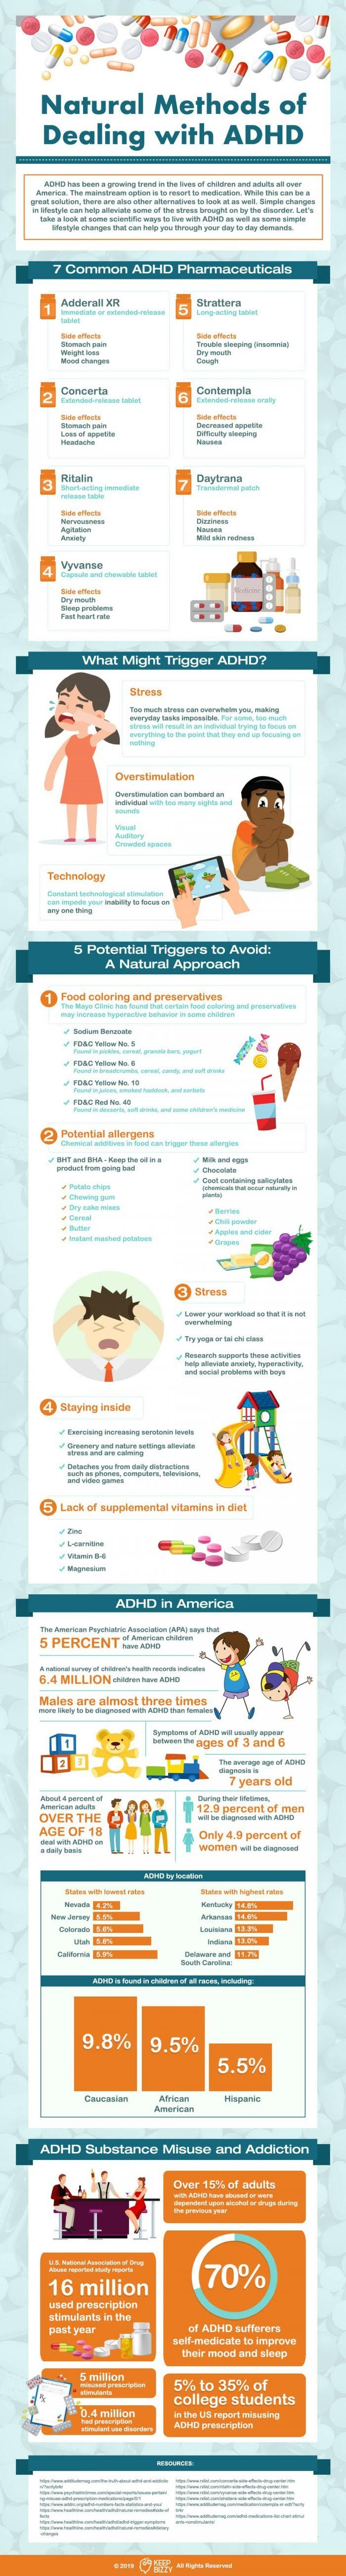 5 Natural Ways to Manage ADHD #infographic